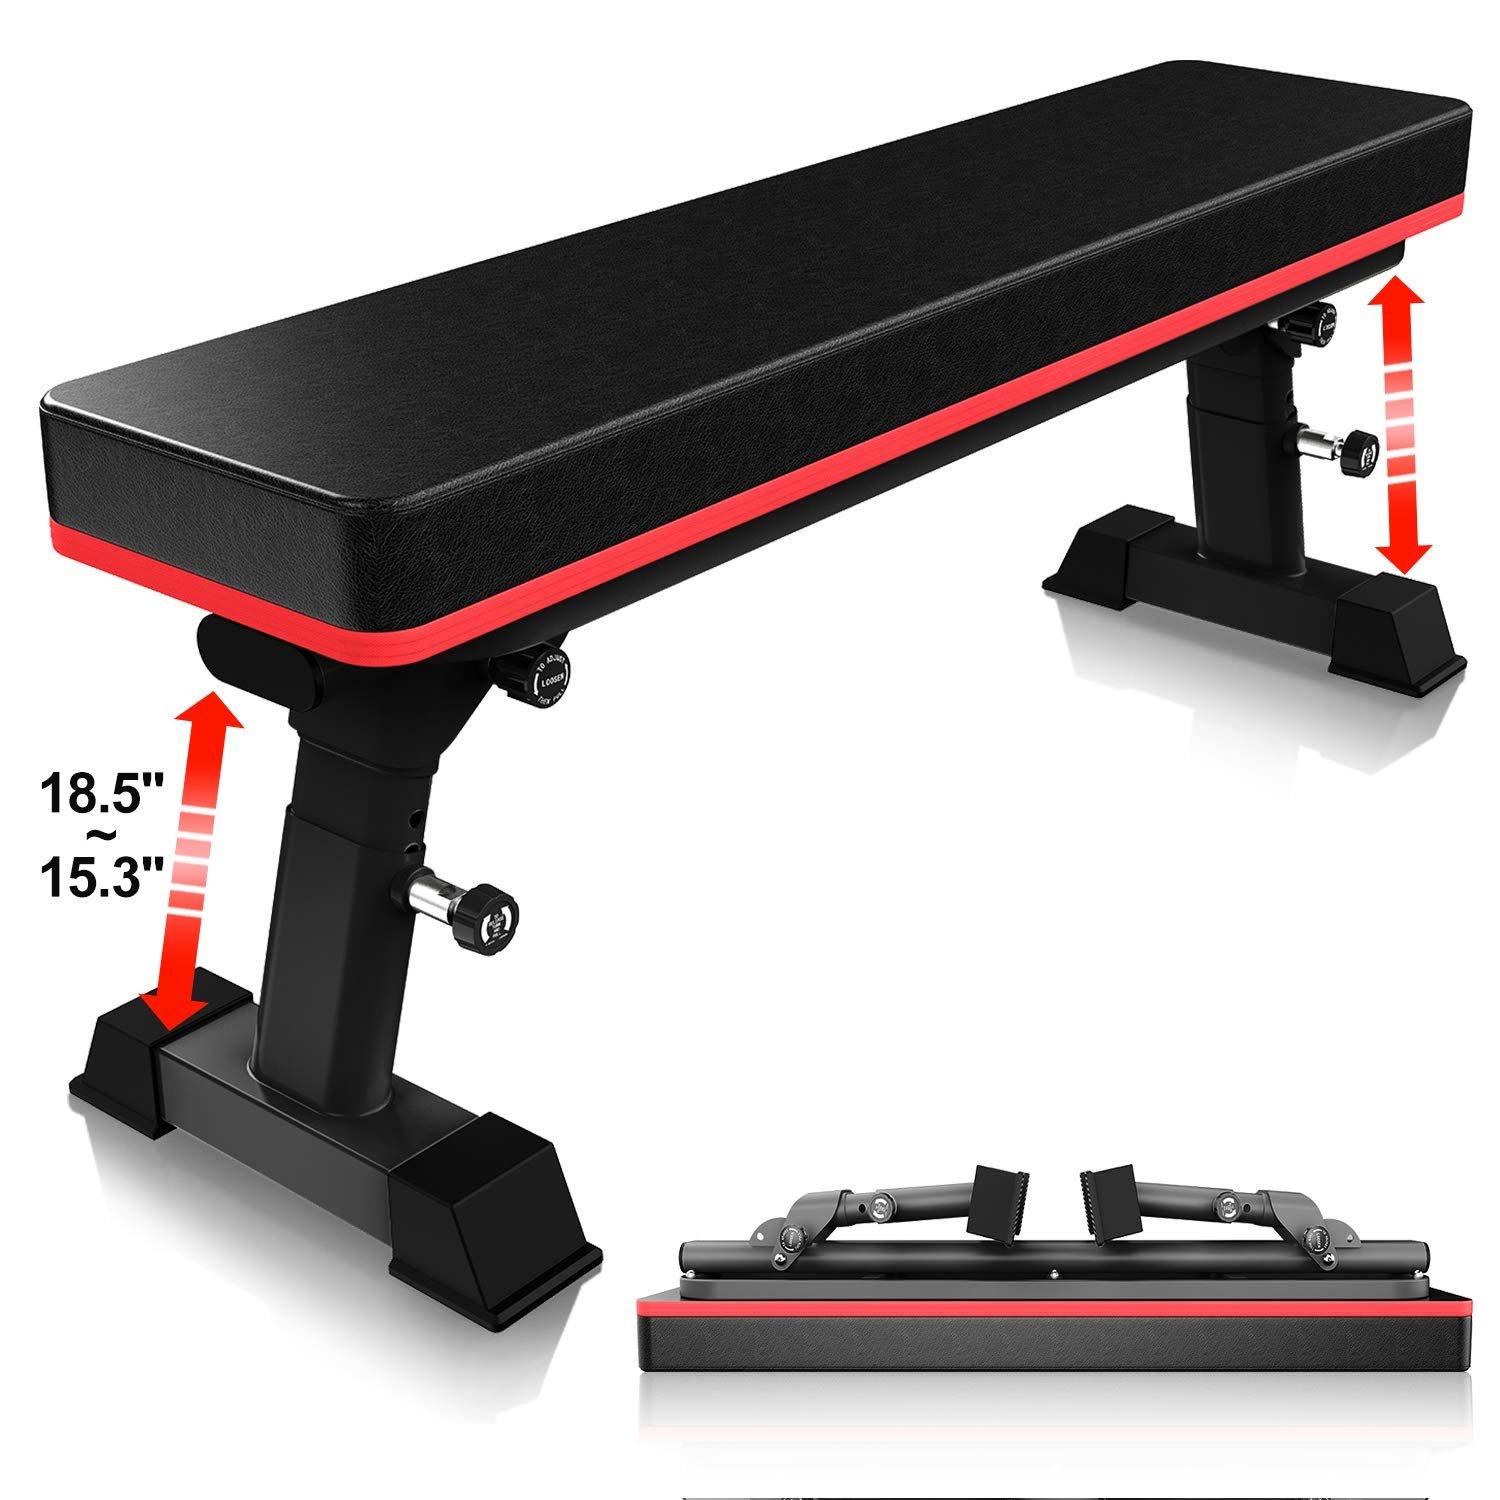 YouTen Adjustable Bench for Body Workout Fitness, 5Positions Flat Bench, Abs Exercise Weight Bench with Steel Frame Black by YouTen